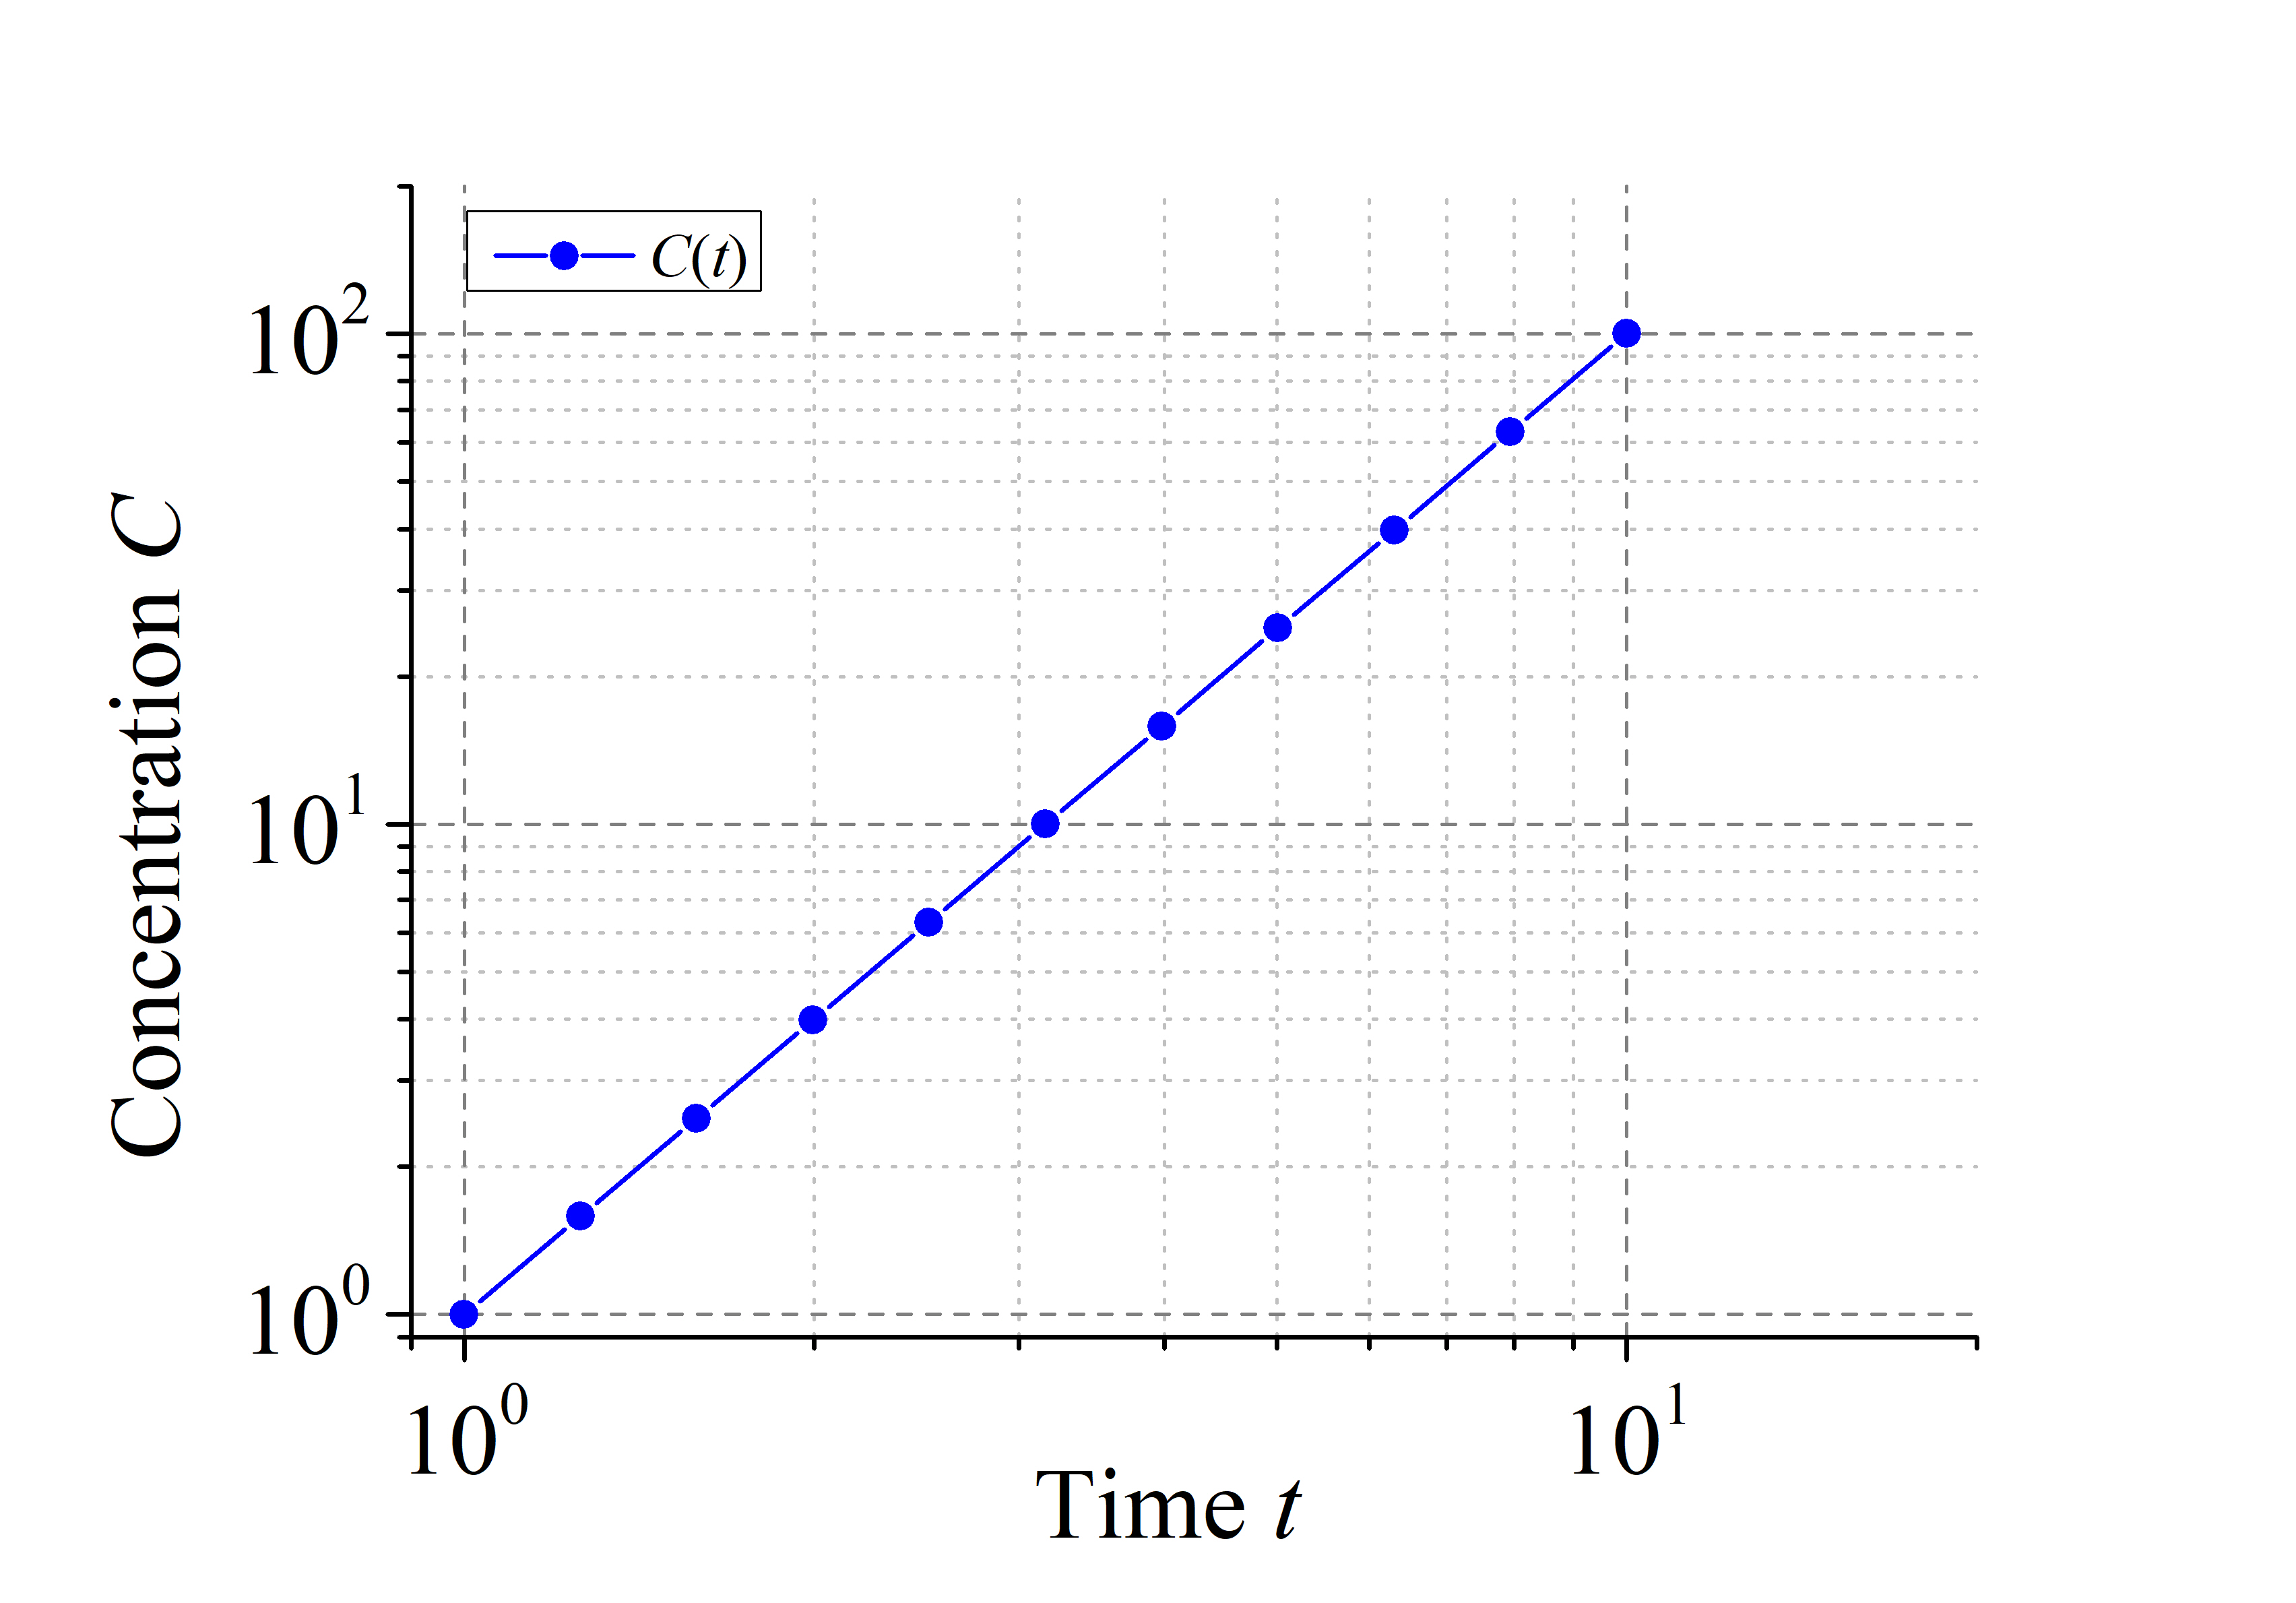 Figure 2: Concentration (C) as a function of time (t) with logarithmic scaling applied to both axes